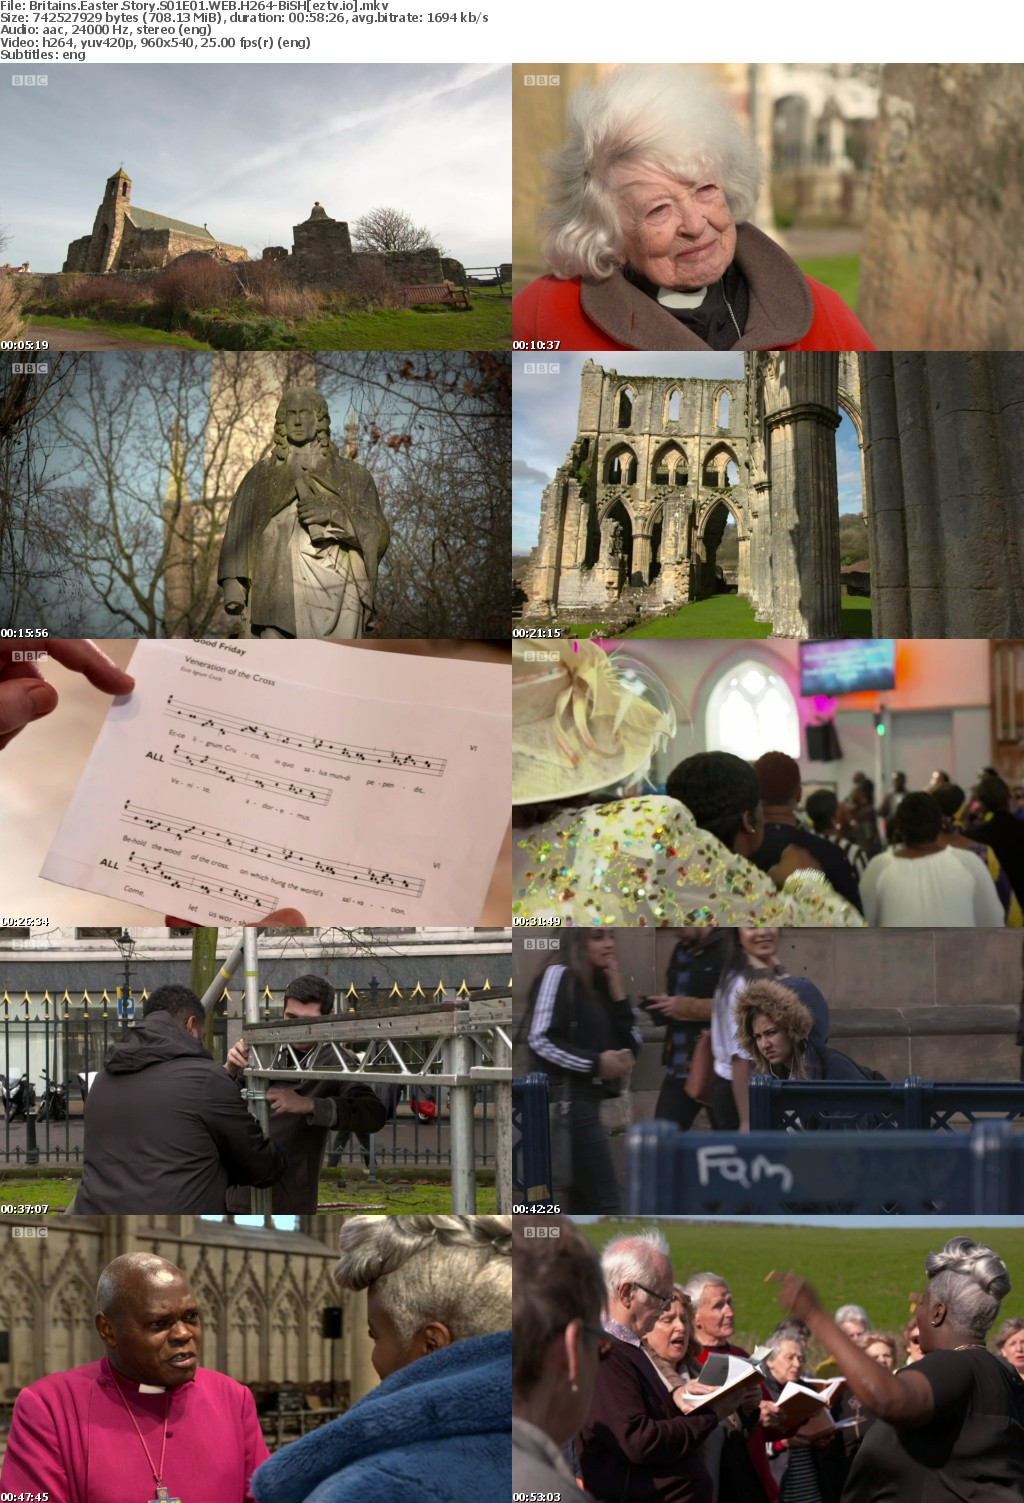 Britains Easter Story S01E01 WEB H264-BiSH